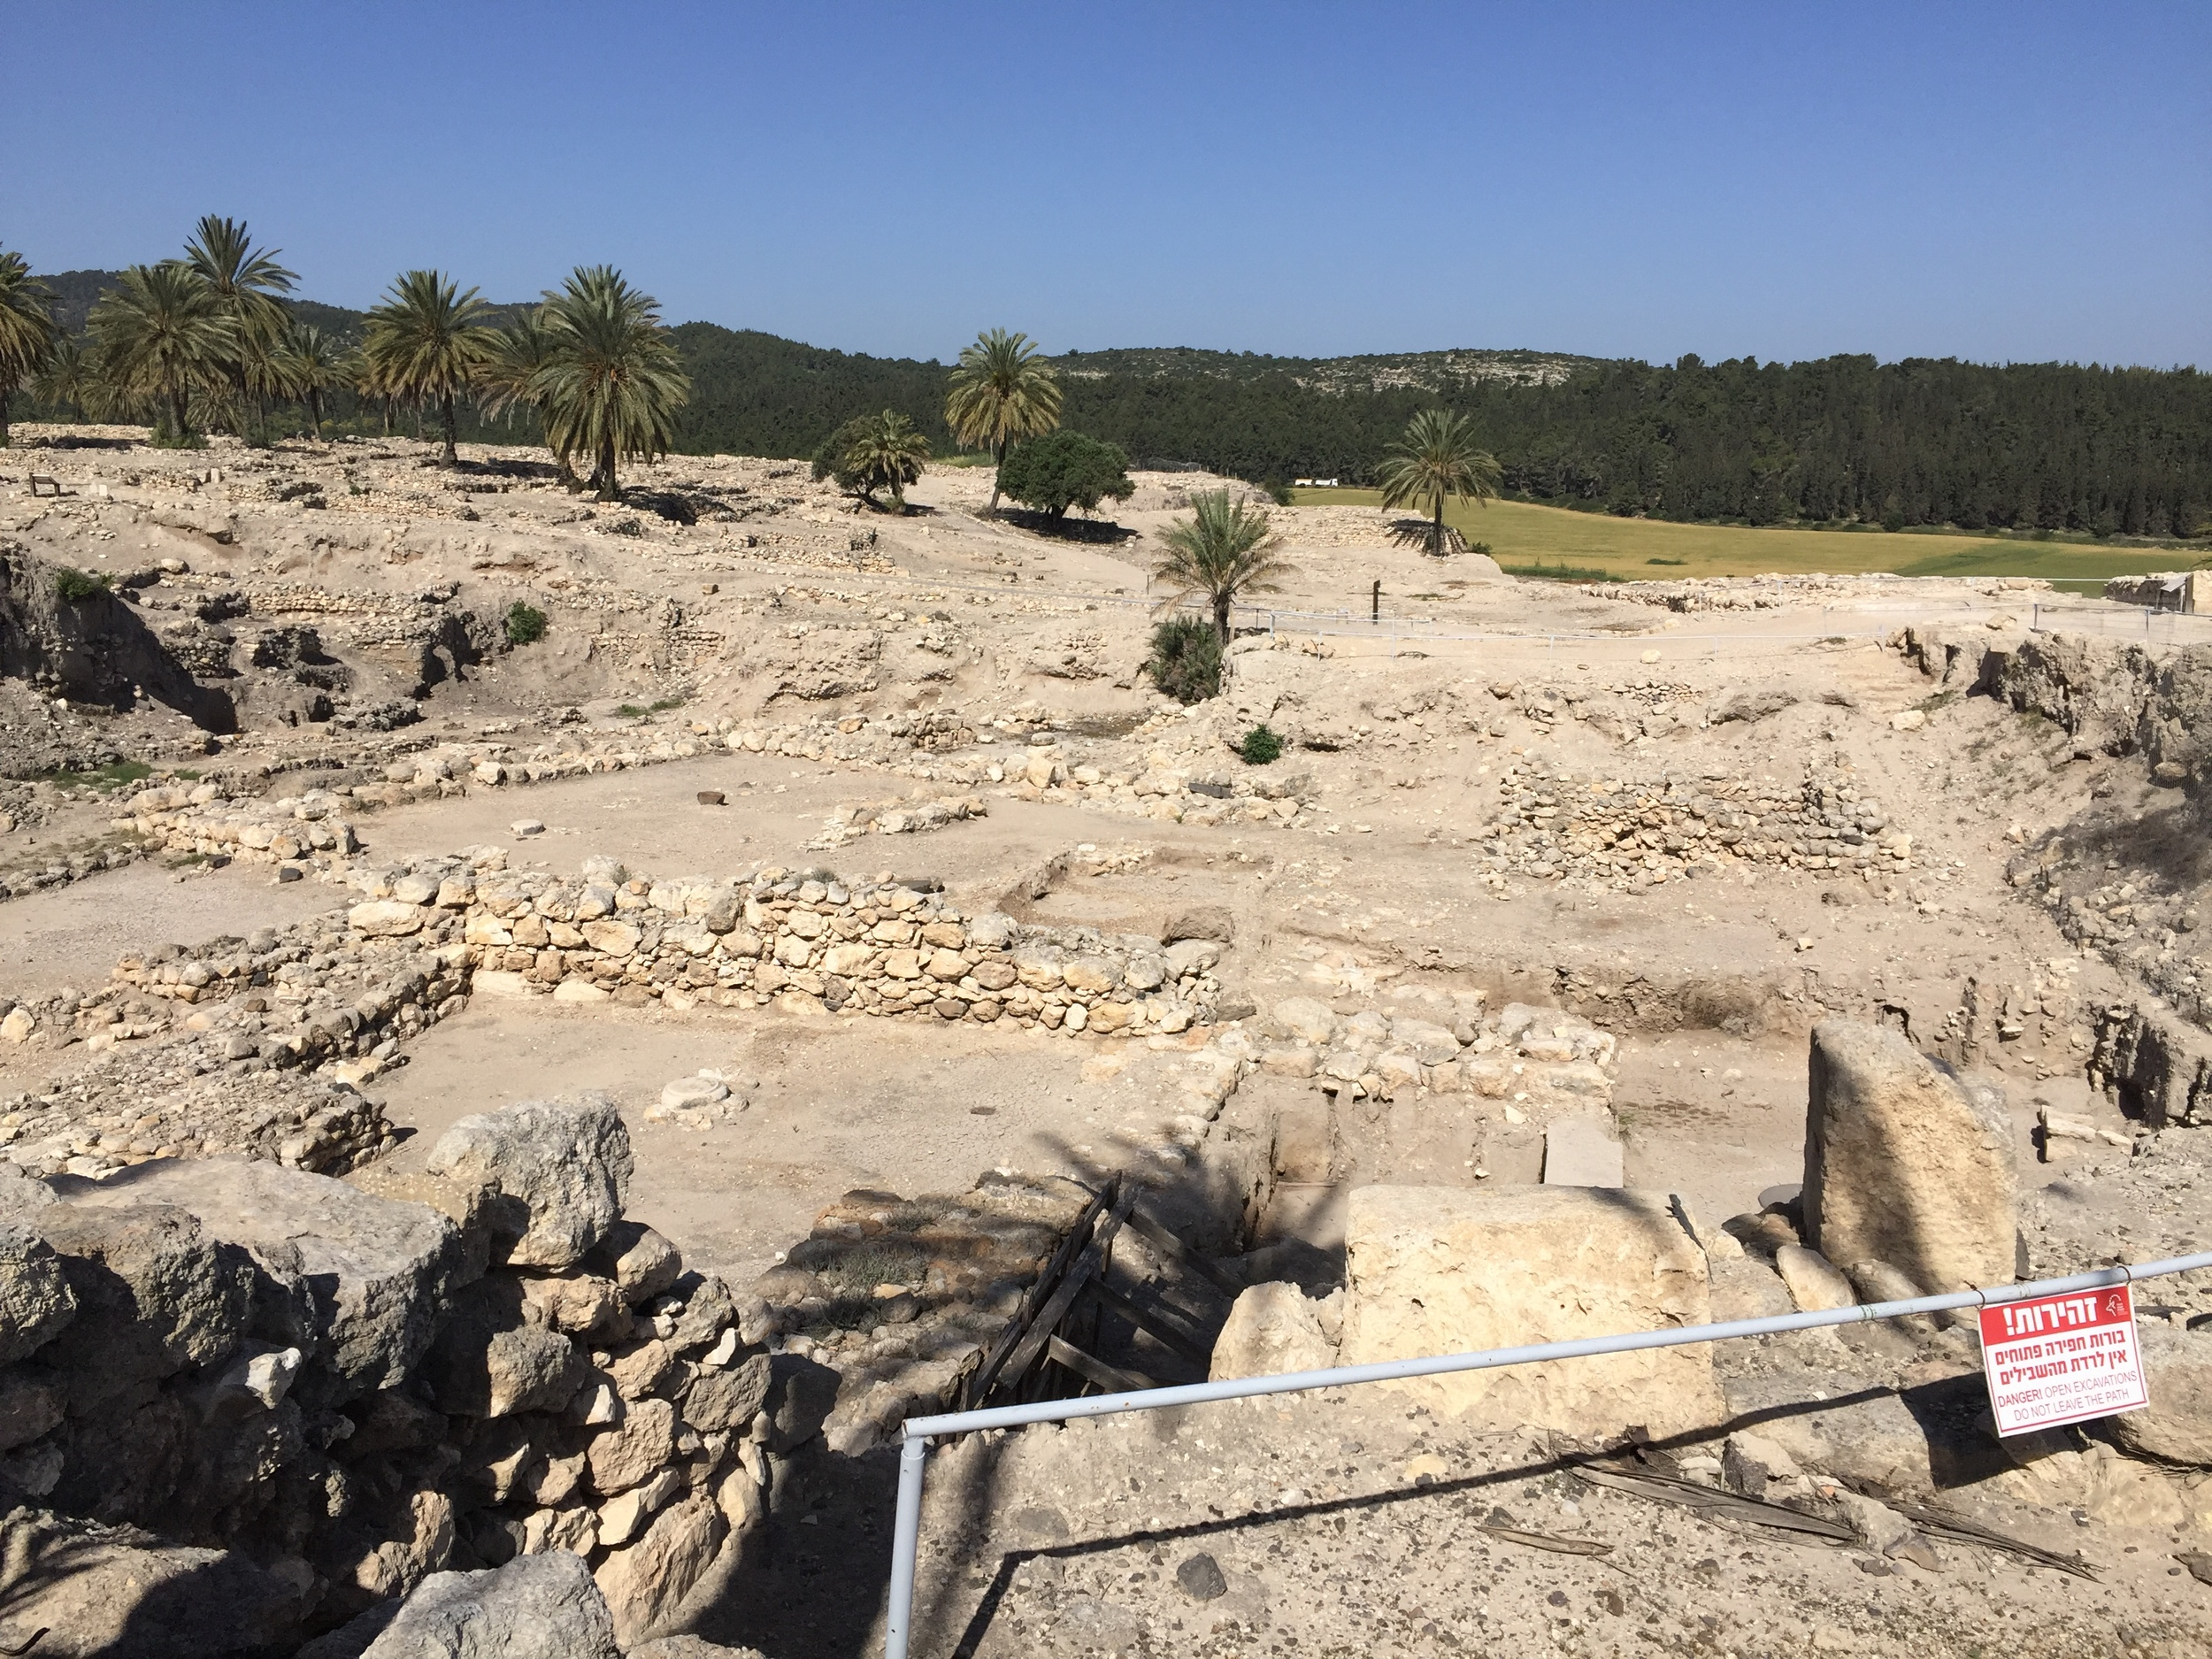 The Megiddo Tel-Excavated to show ruins of an ancient city.